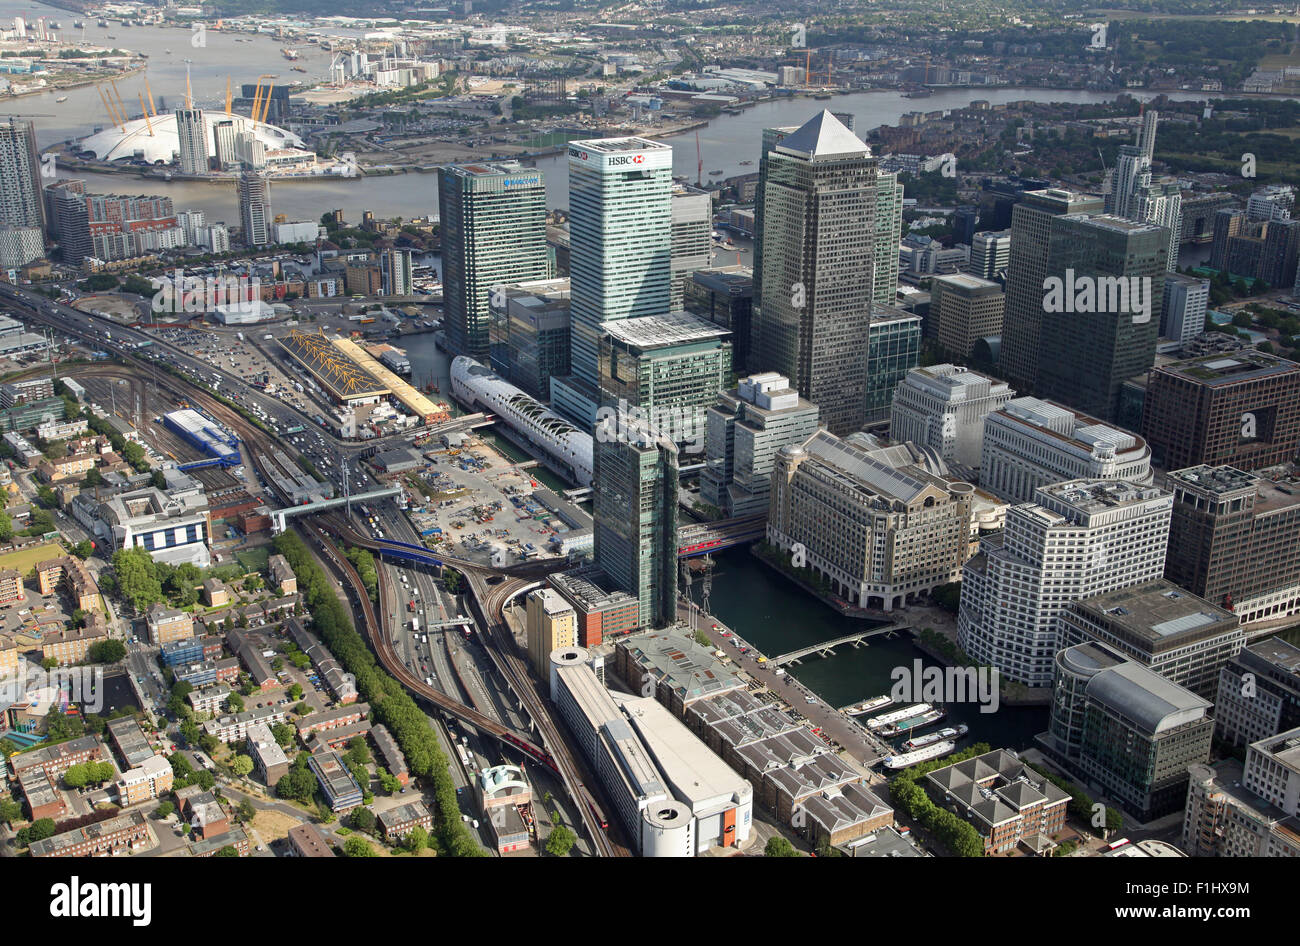 aerial view of Canary Wharf & O2 Arena looking along the West India Dock Road A1261 and Docklands Light Railway - Stock Image